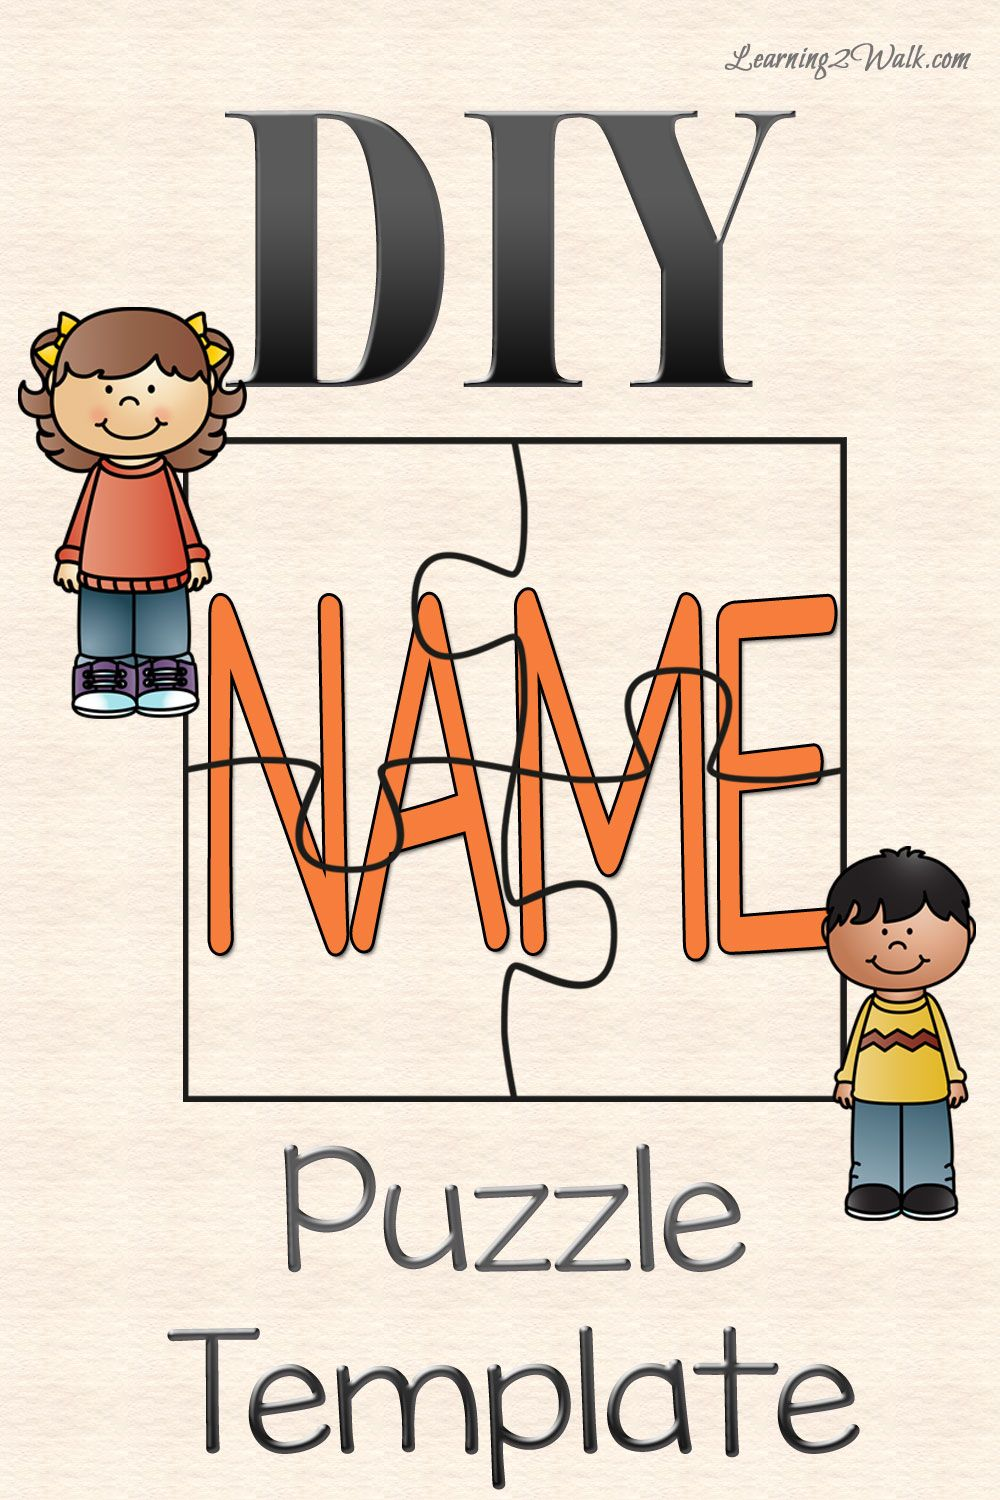 photograph regarding Name Puzzle Printable identify Do it yourself Standing PUZZLE TEMPLATE preschool Preschool names, All